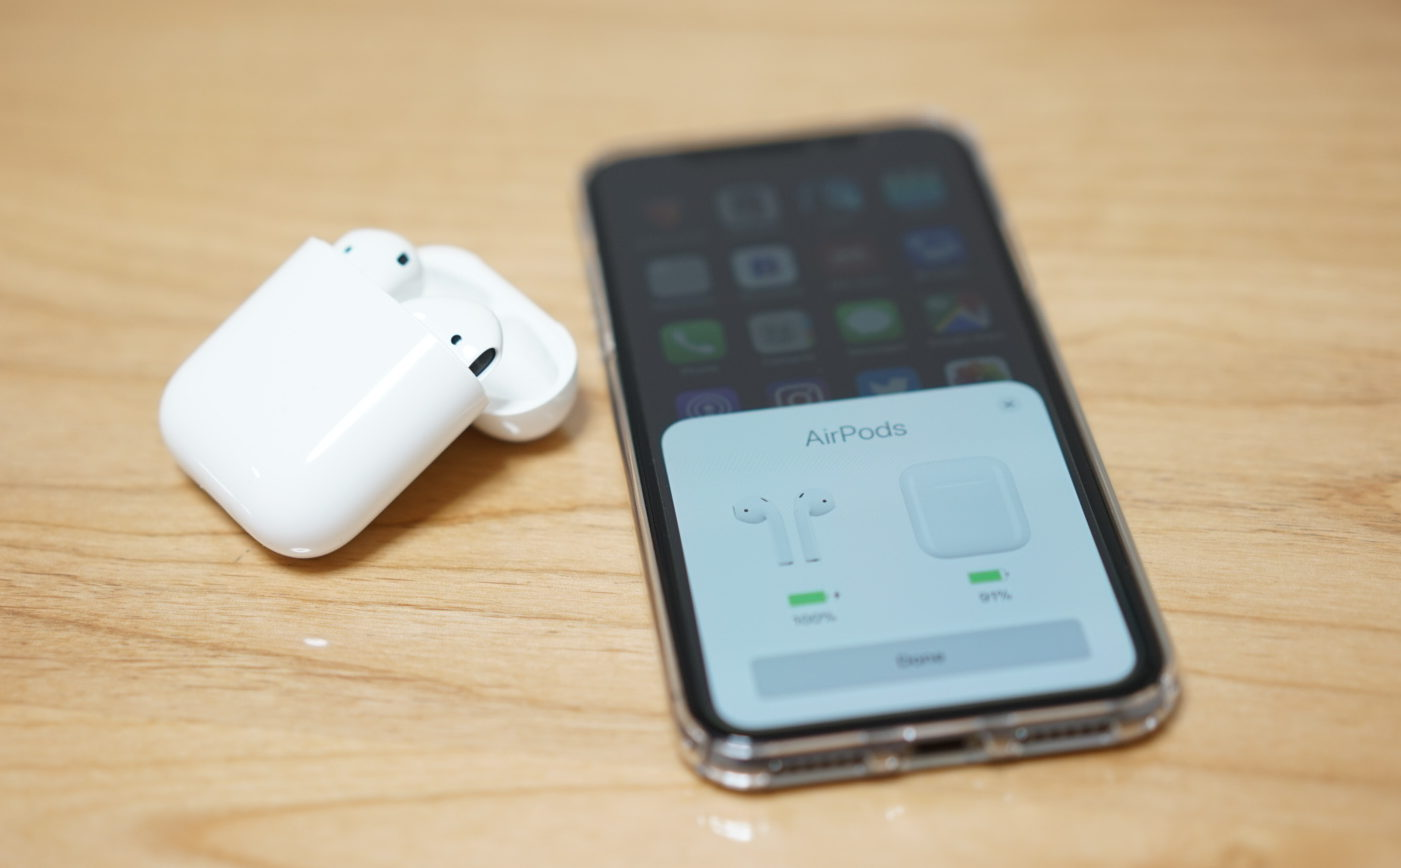 AirPods allow iPhone X to show battery percentage